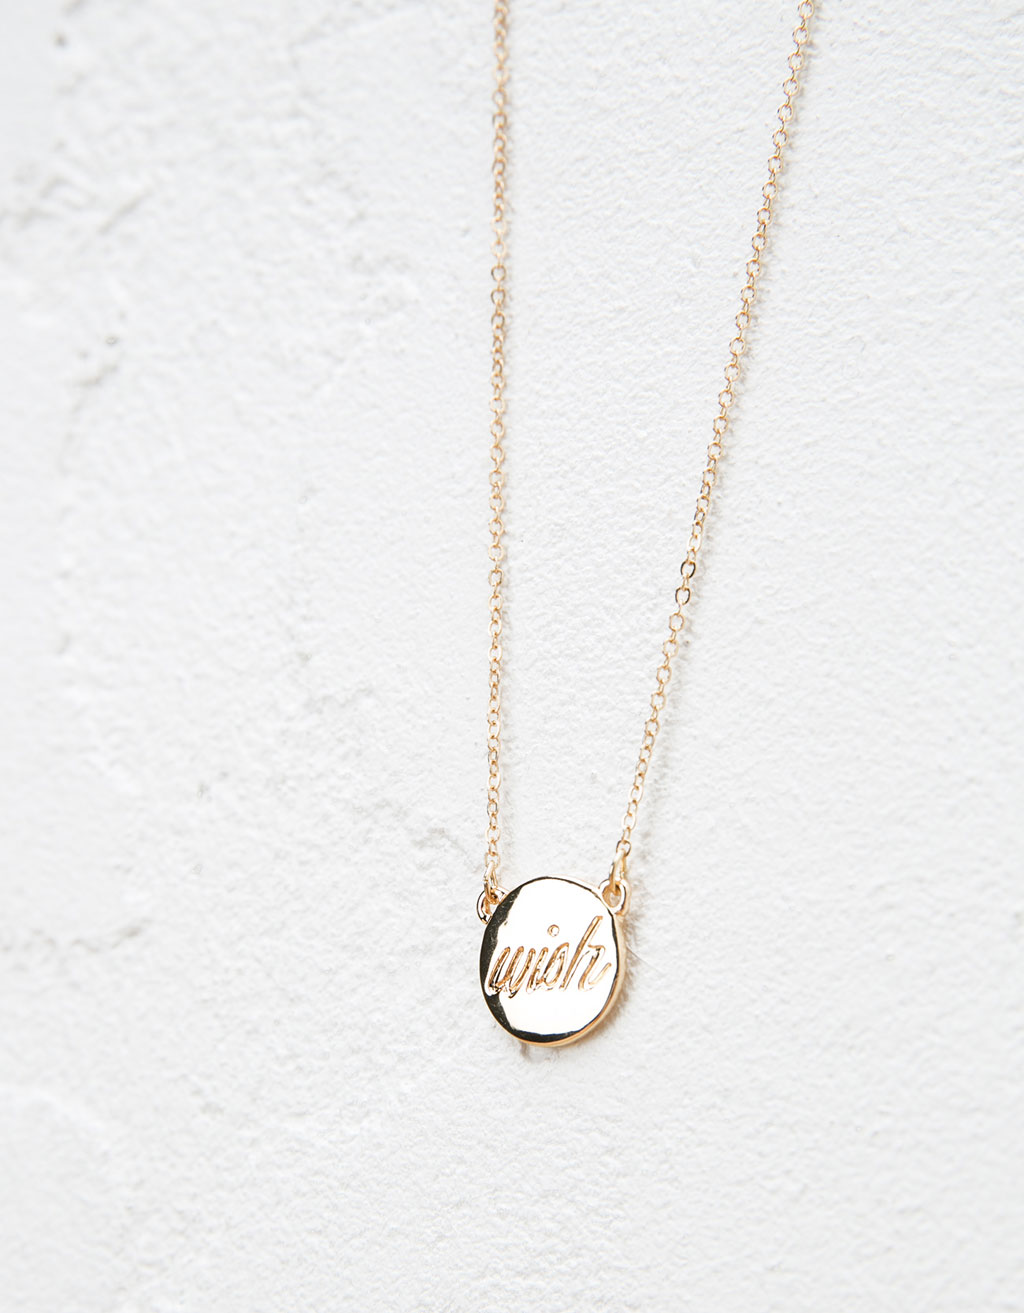 Circle message necklace